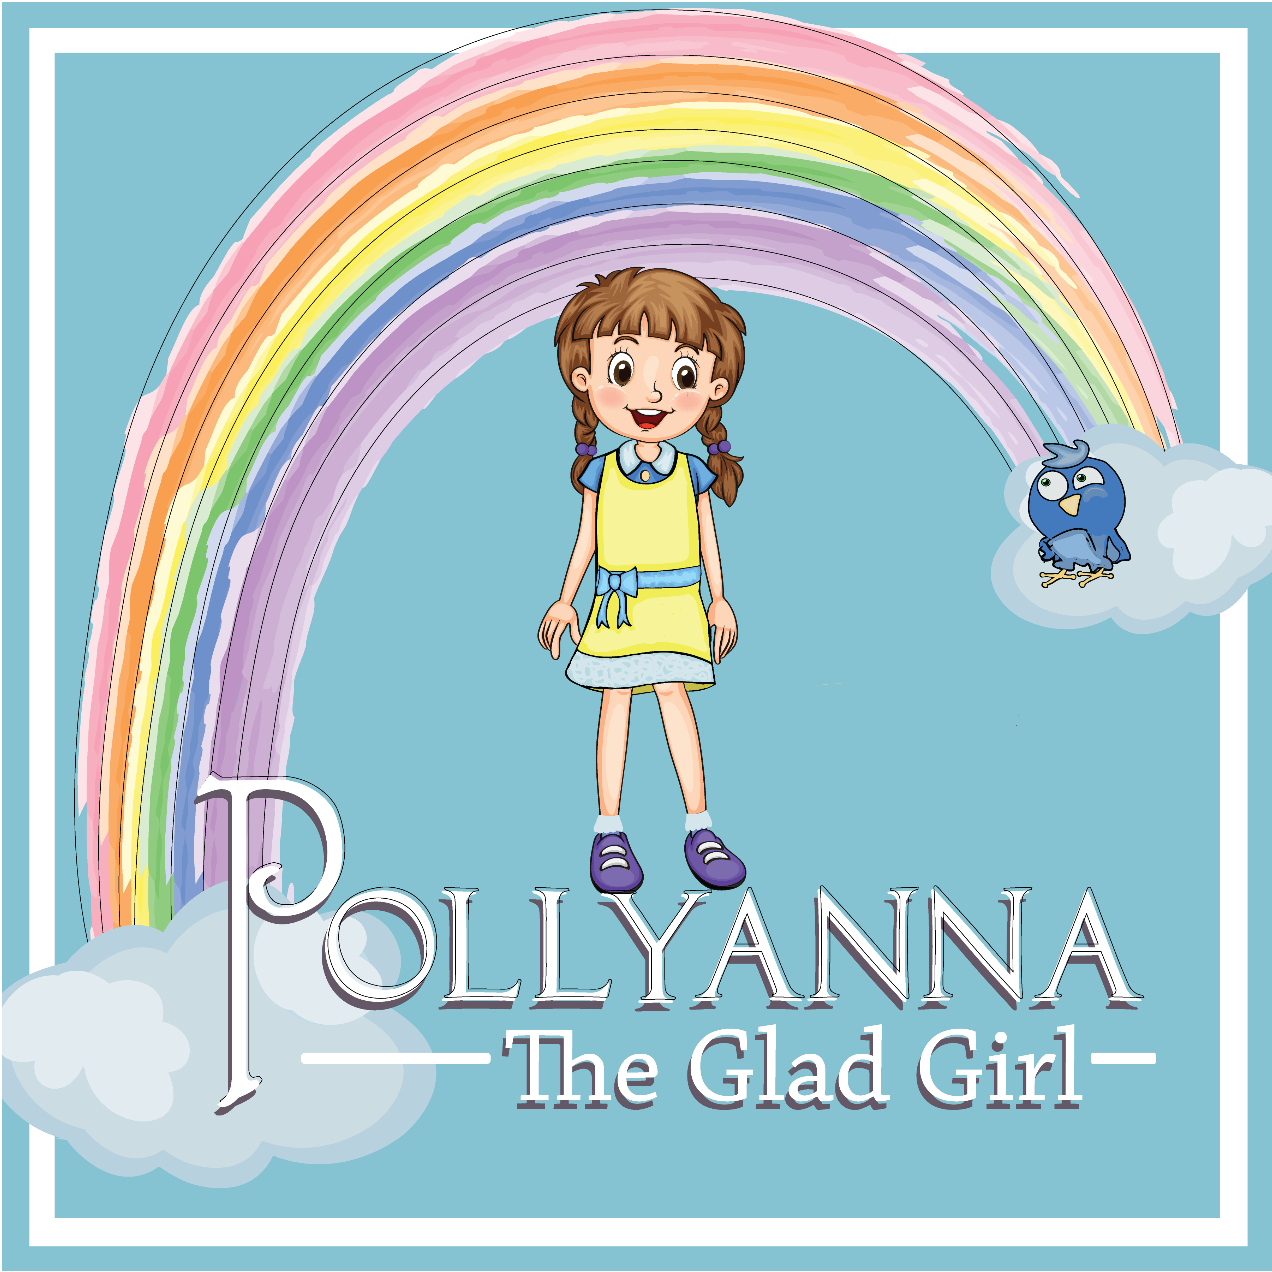 Pollyanna: The Glad Girl